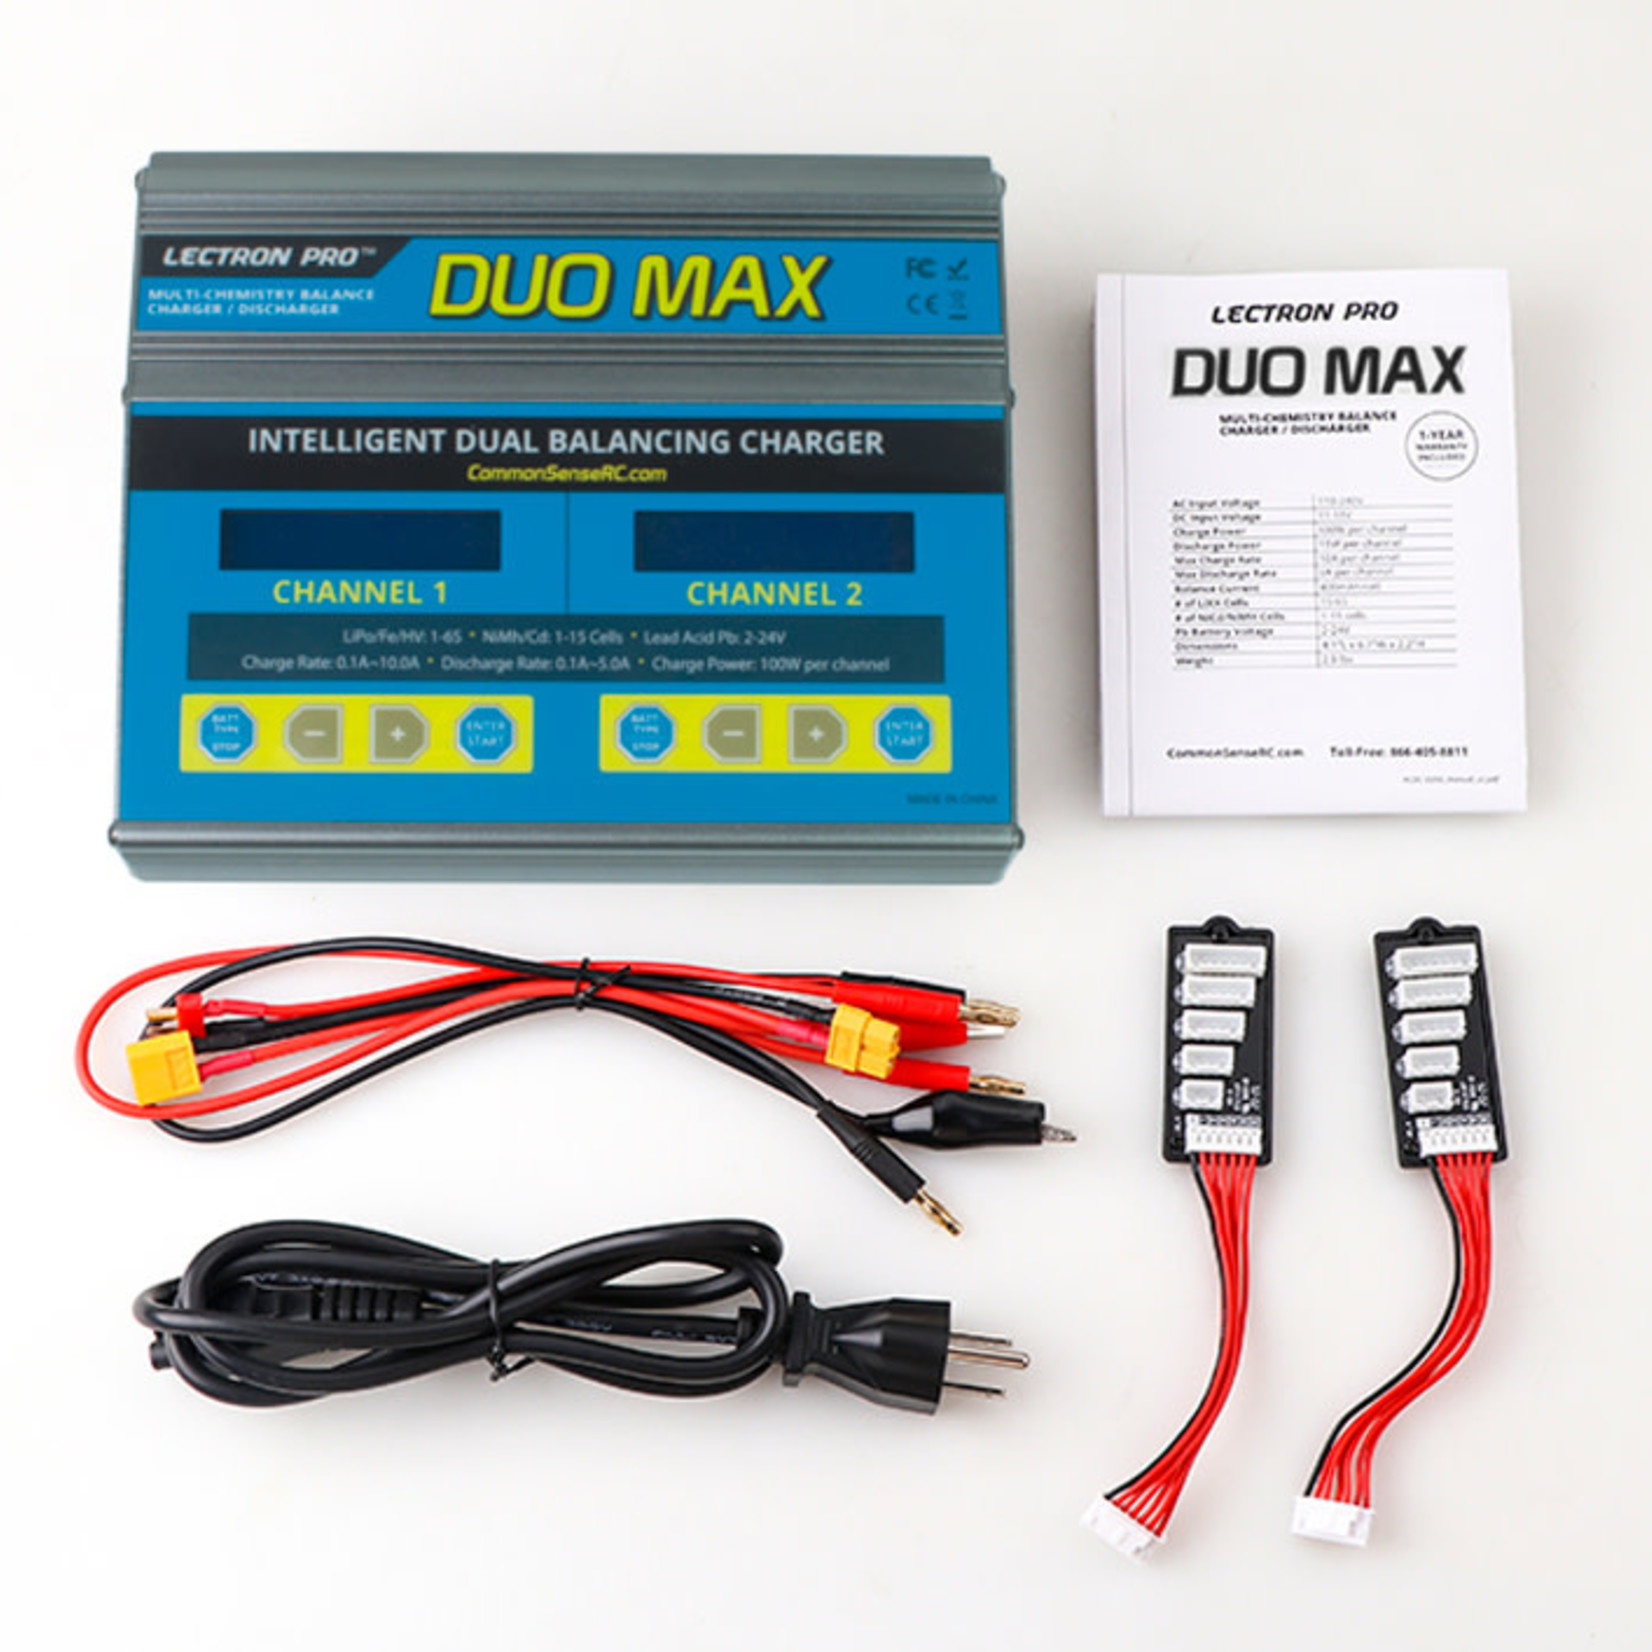 Common Sense RC CSRCACDC-D200 Common Sense RC DUO MAX - 200W 10A Two-Port Multi-Chemistry Balancing Charger